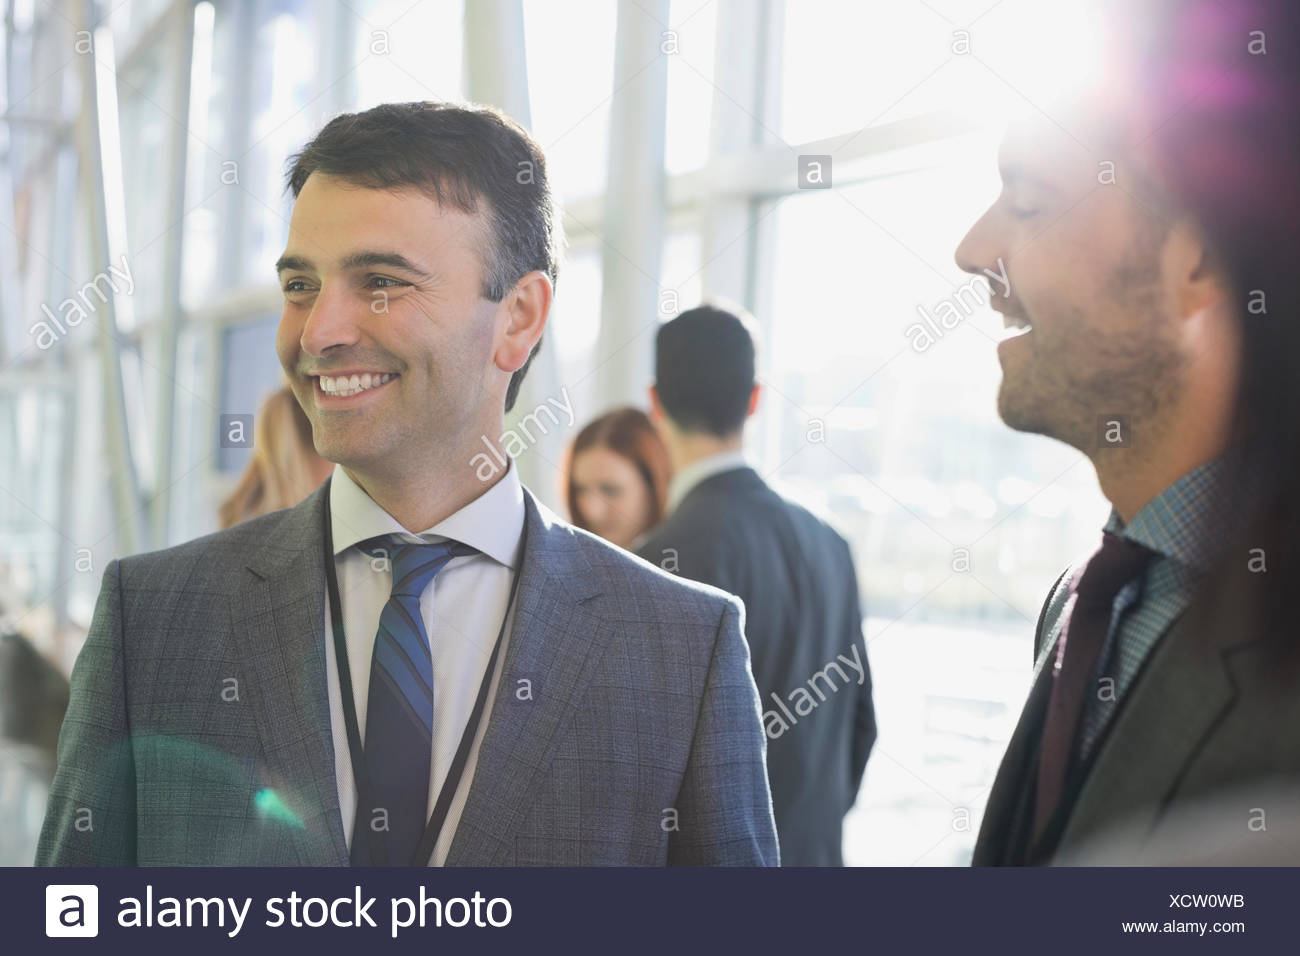 Businessmen smiling in lobby Photo Stock